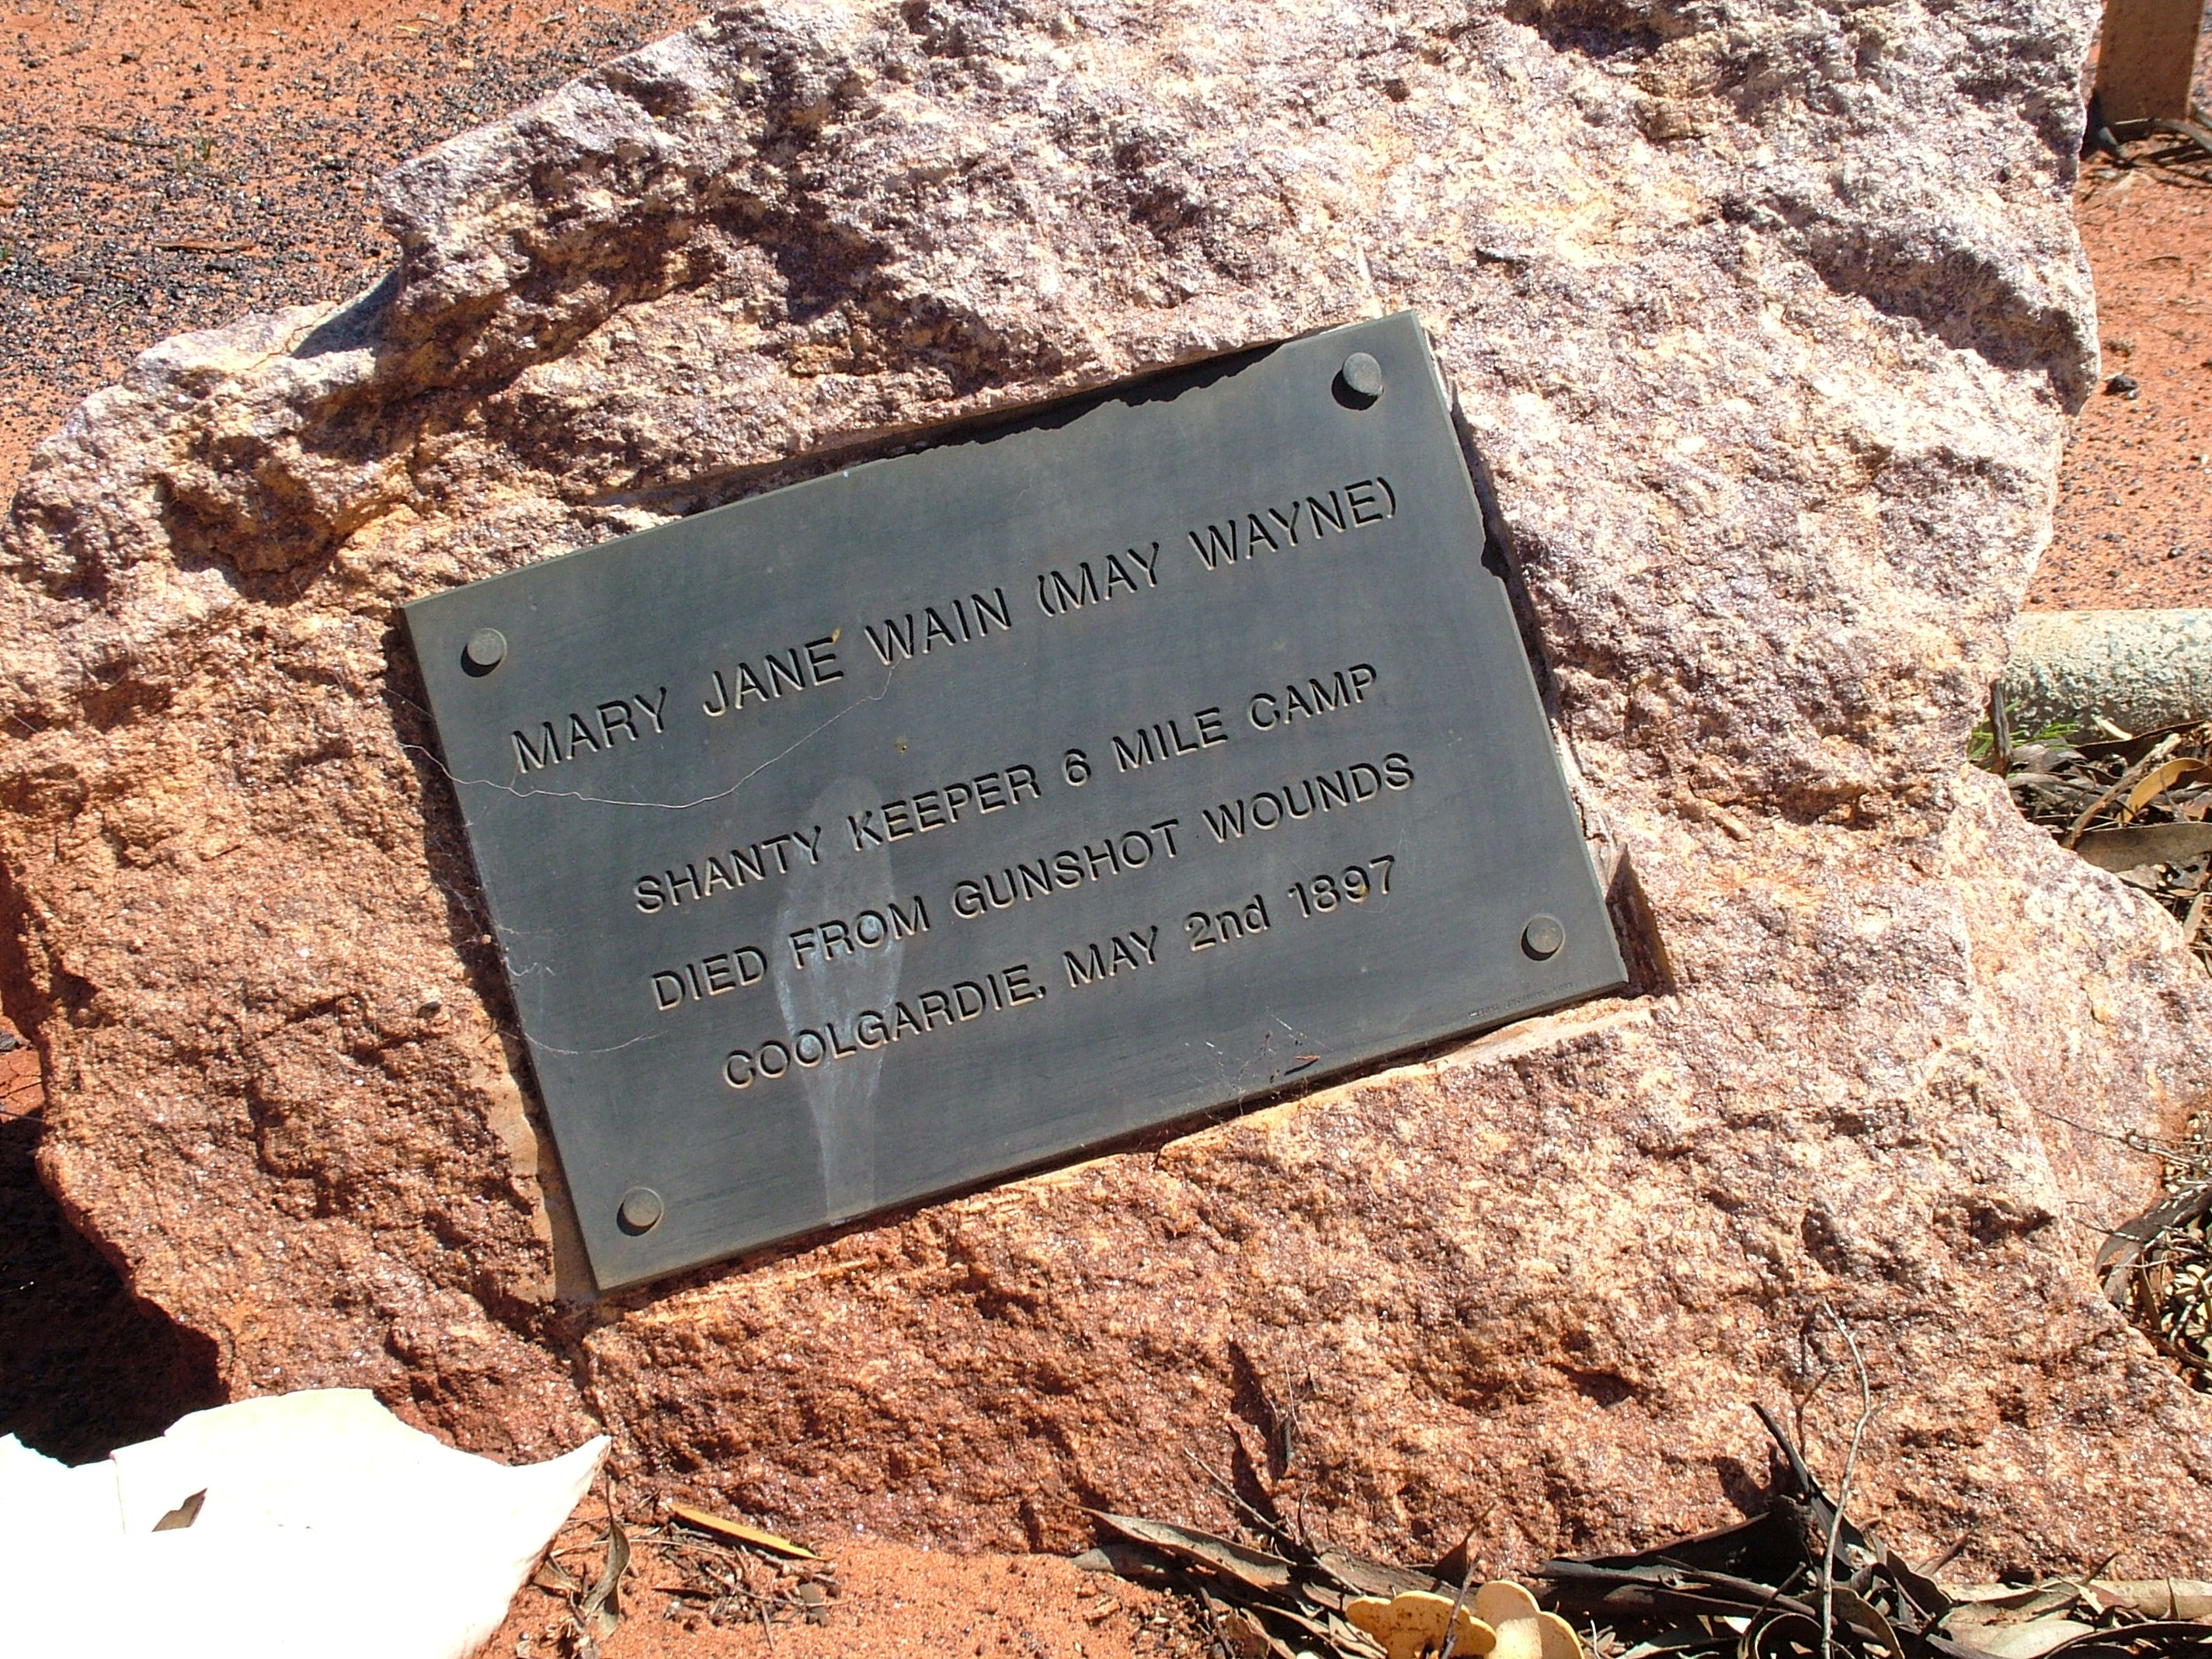 The Murder of May Wain – grave tales